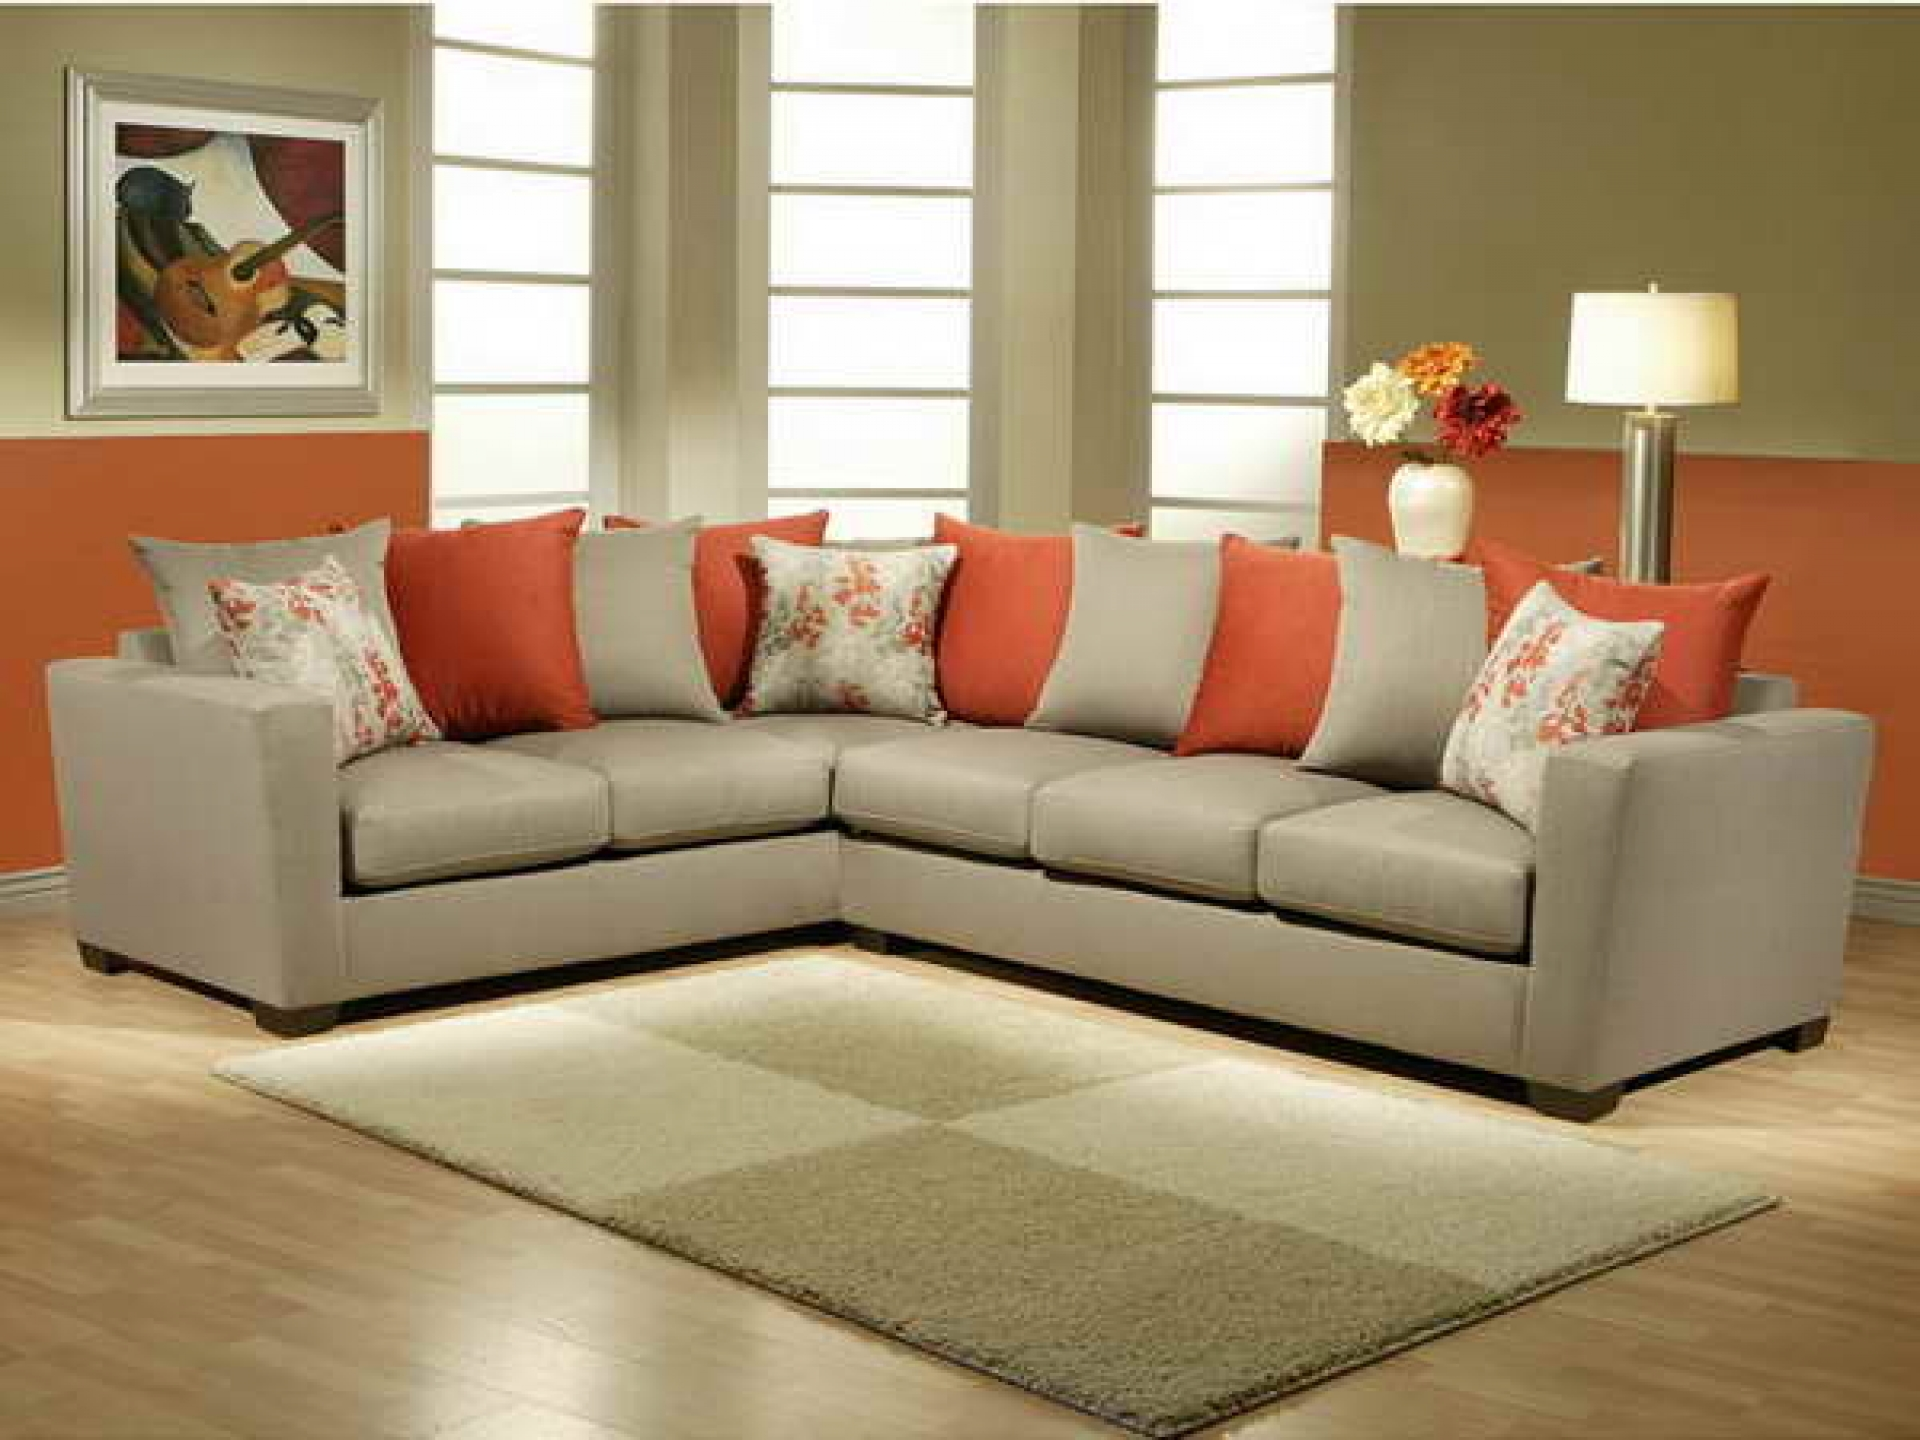 Most comfortable sectional sofa - Most Comfortable Pillow Couch With Orange And Grey Rug